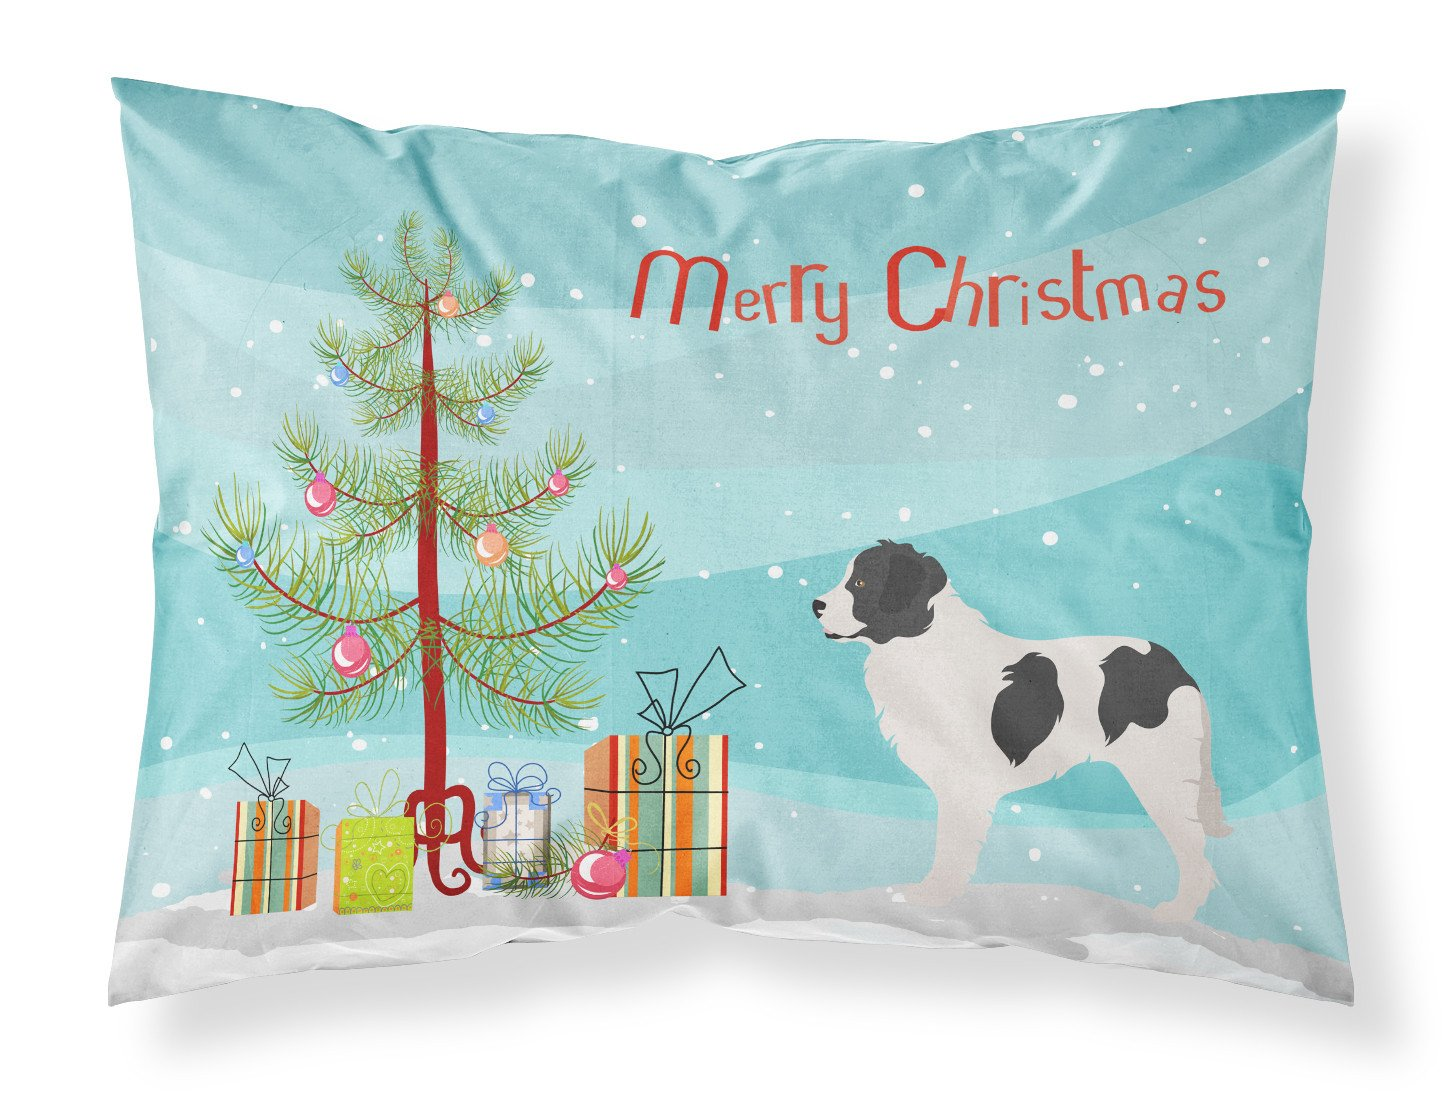 Landseer Christmas Fabric Standard Pillowcase BB8493PILLOWCASE by Caroline's Treasures